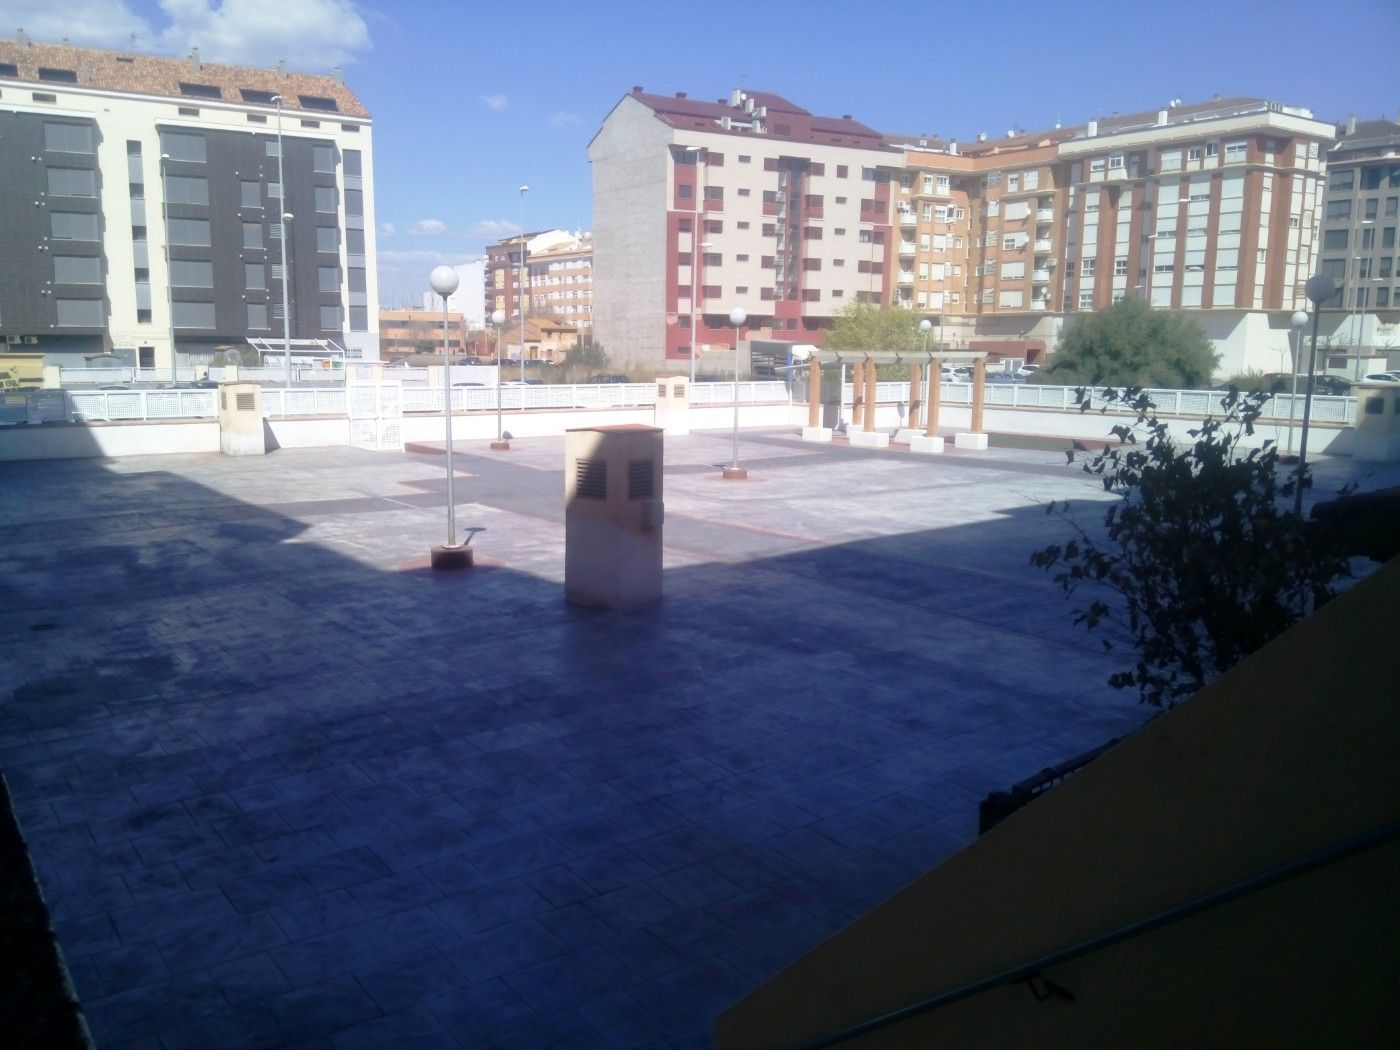 Piso  Calle manuel sanchis guarner. Chaflan